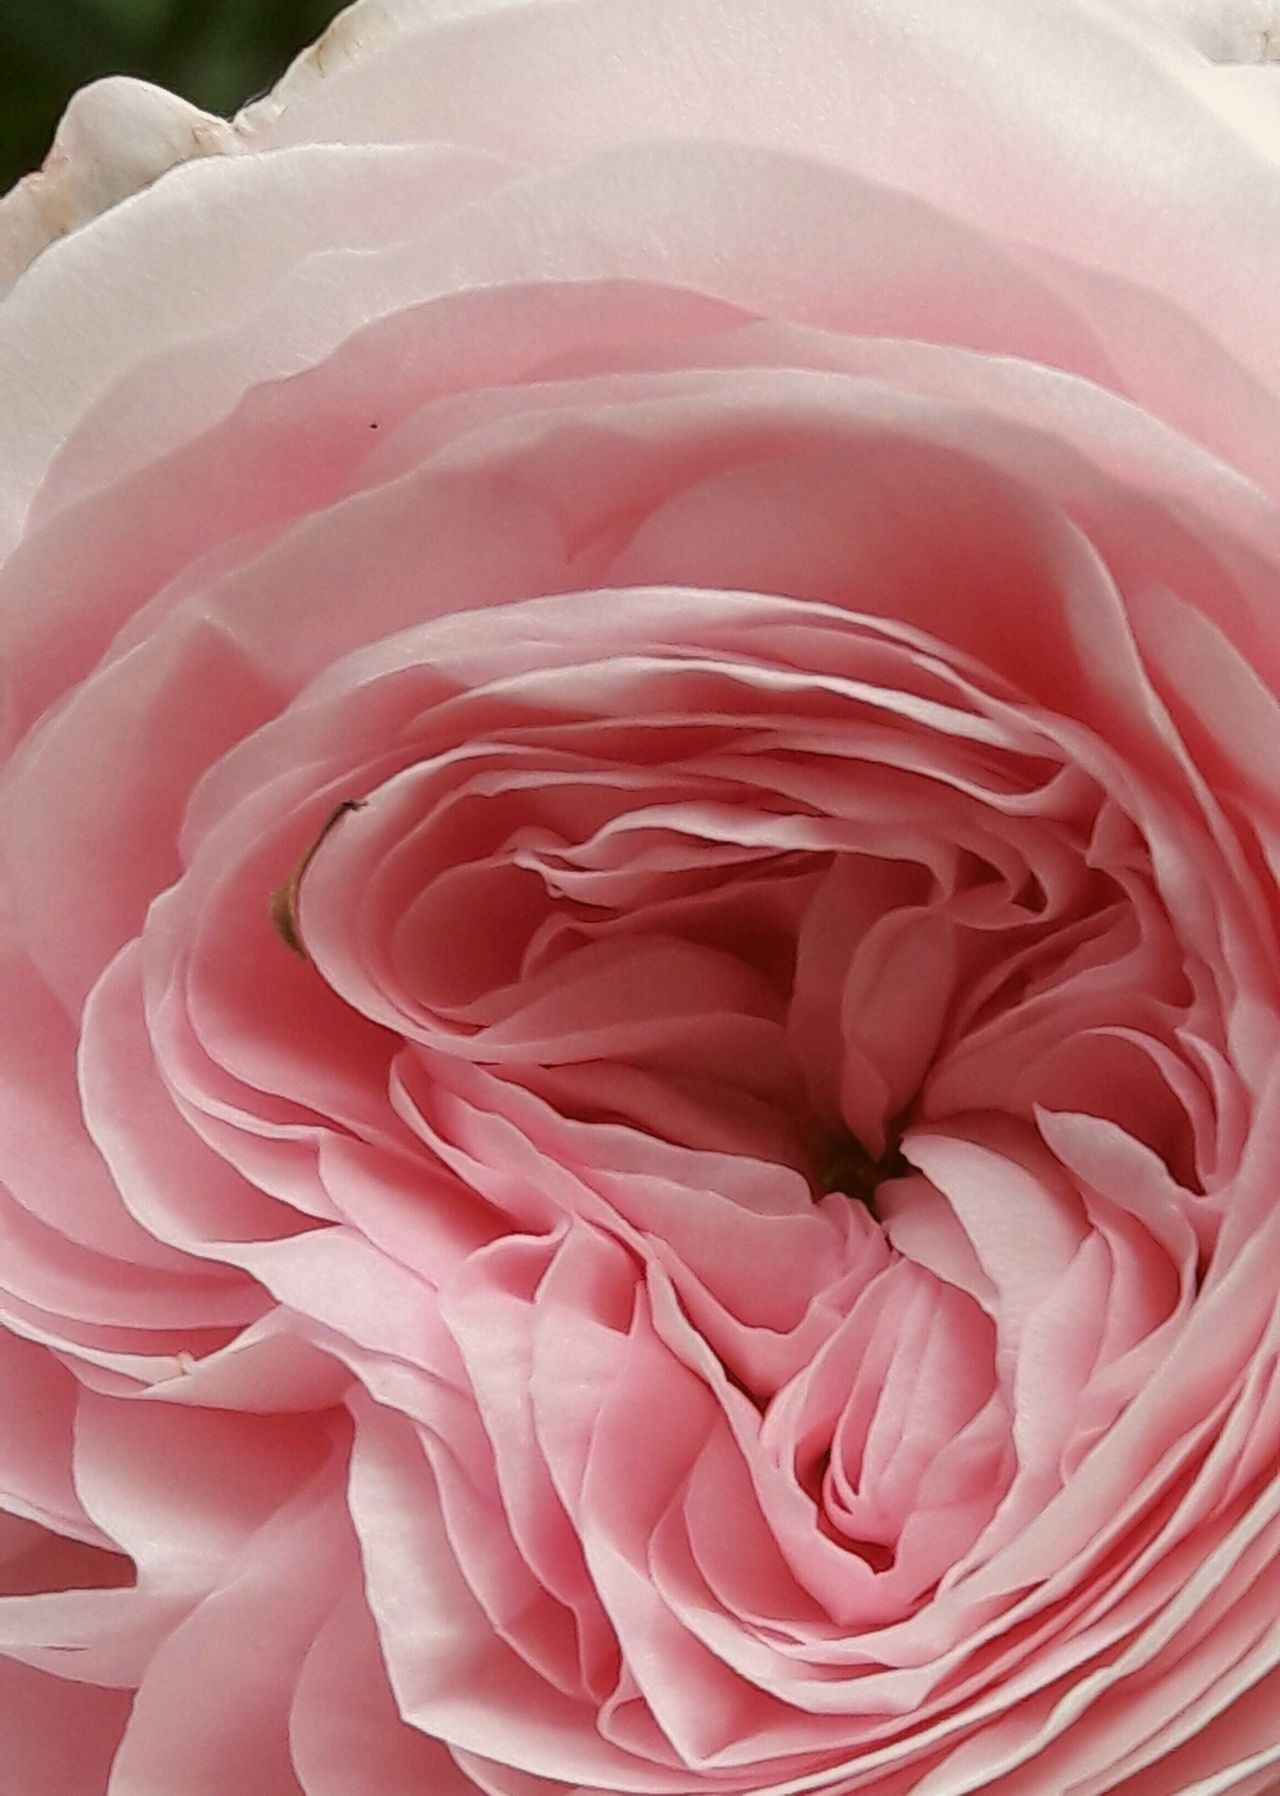 Pink Color Abstract Nature Beauty In Nature Close-up Flower Head Garden Photography Perfume Old Rose Scent Petal Beauty In Nature Rose - Flower Petals Old Rose Rose🌹 BYOPaper!